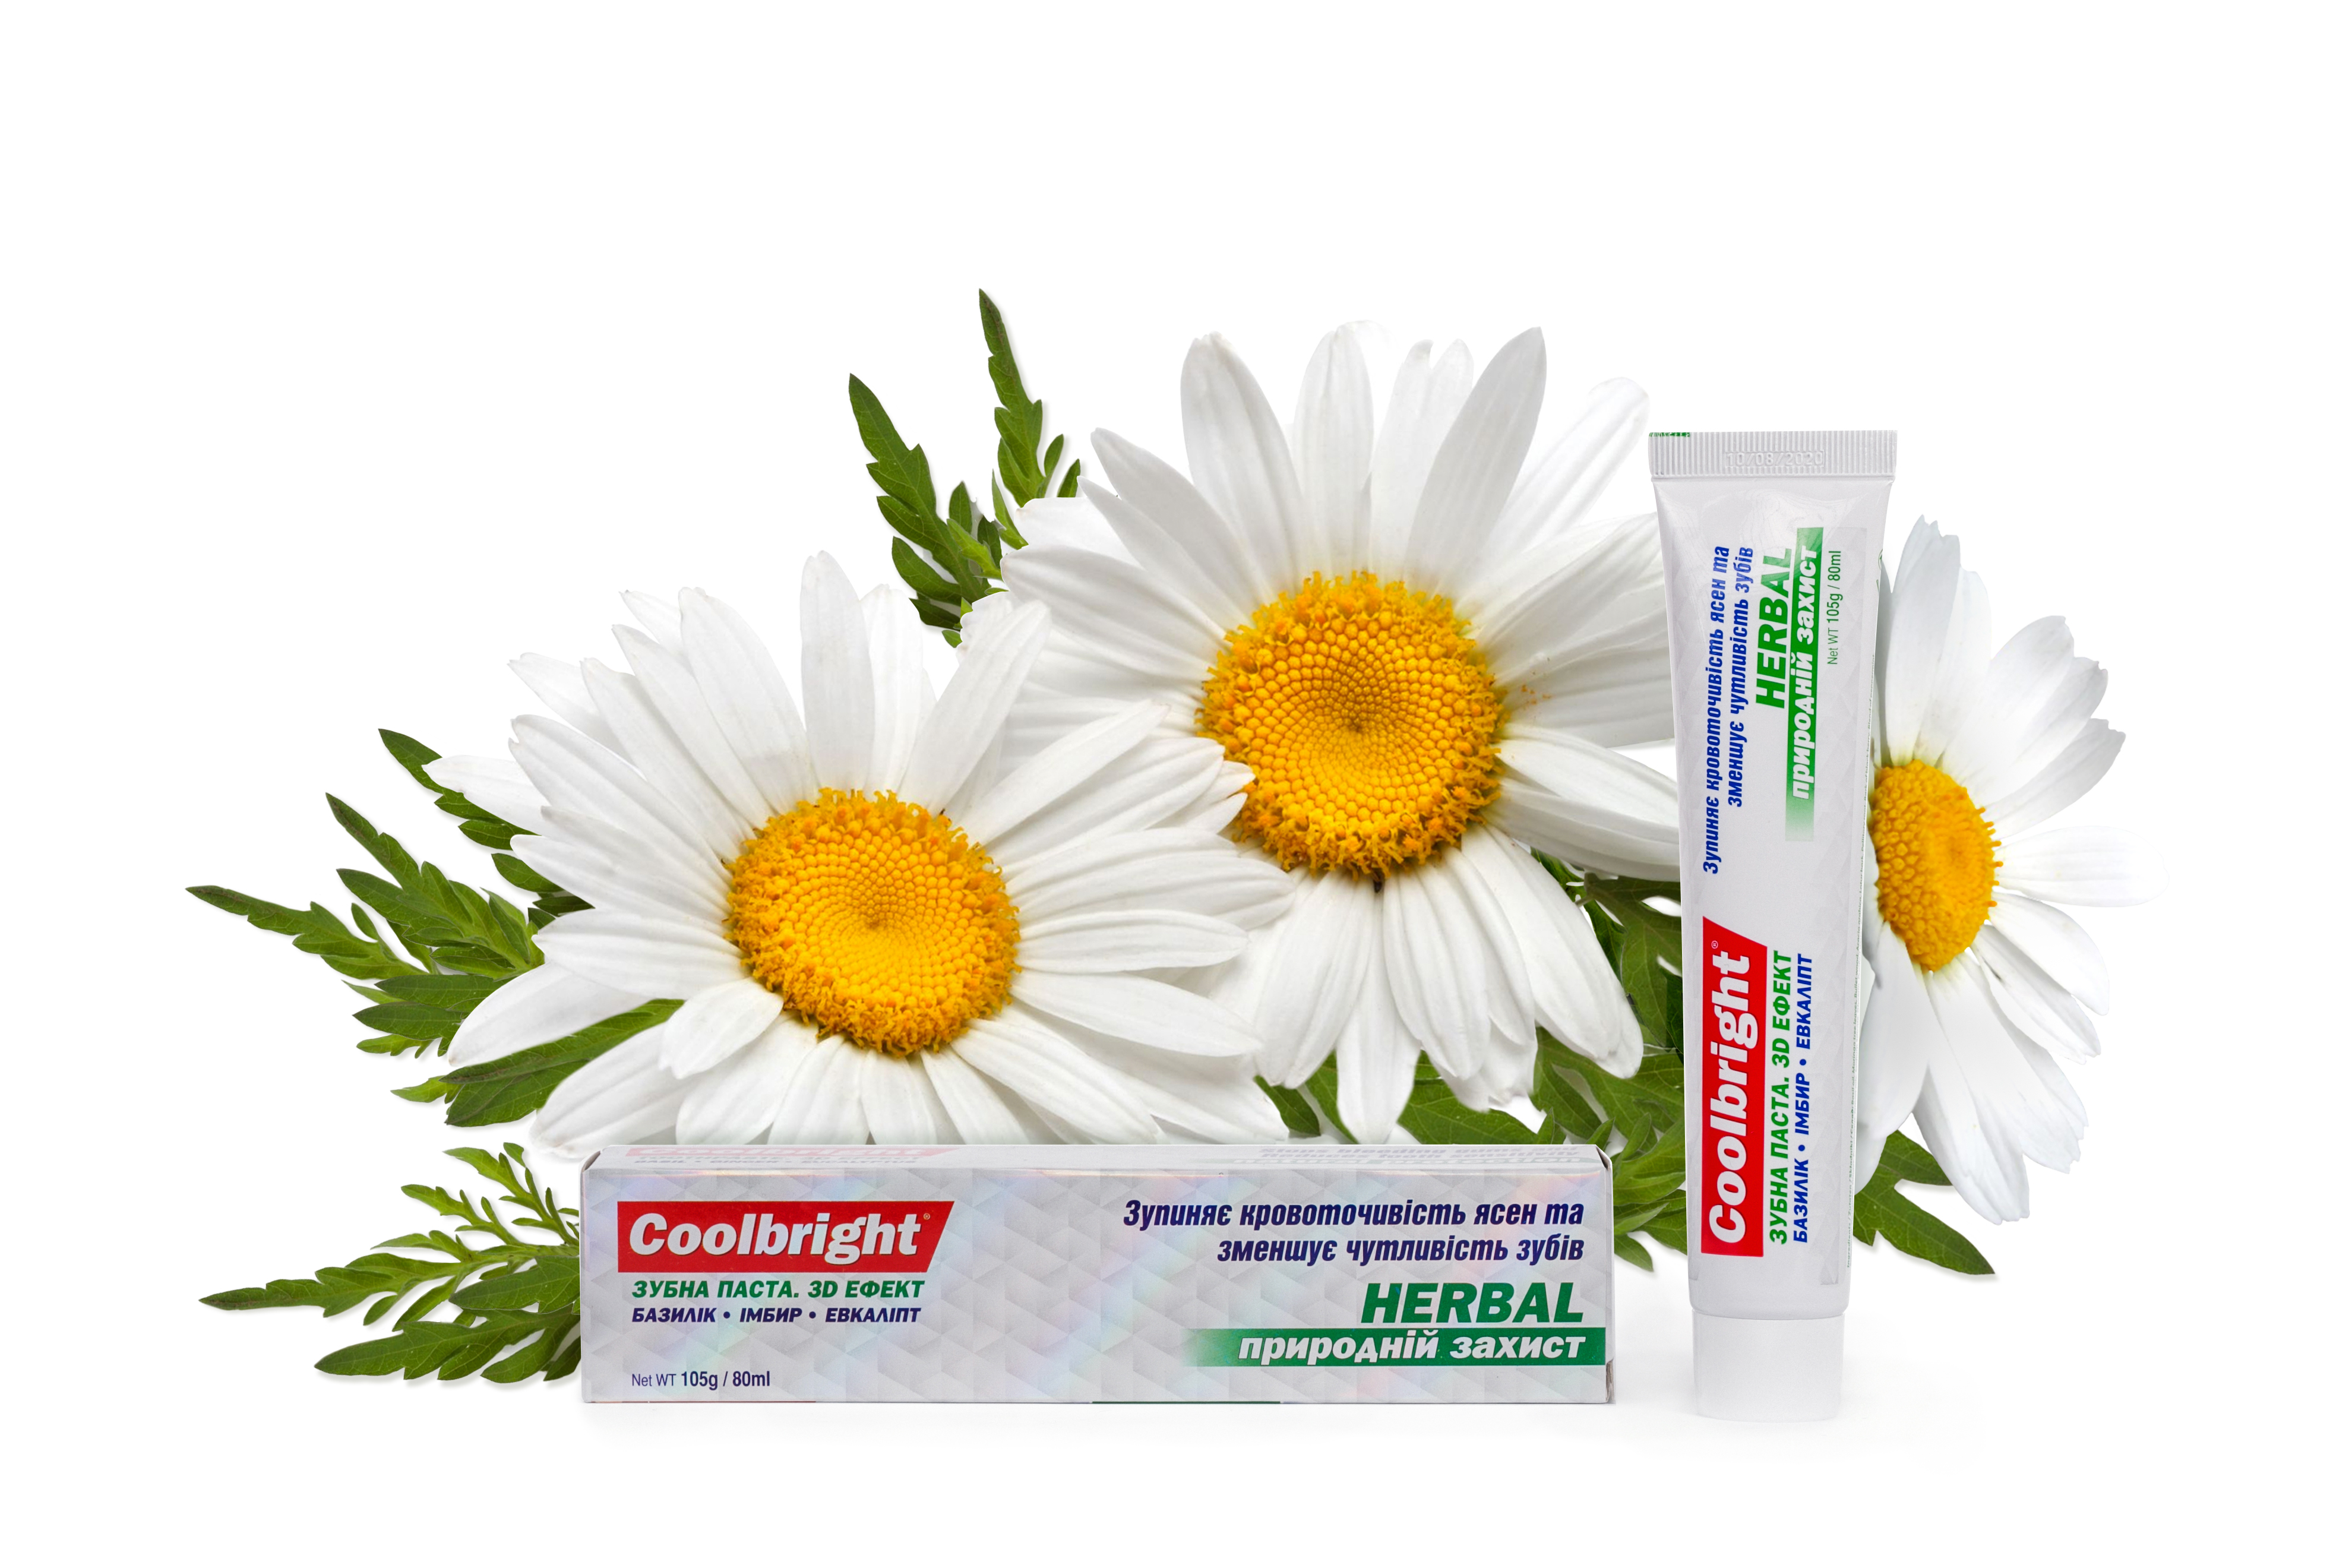 Coolbright Herbal 3D 105г/ 80 мл